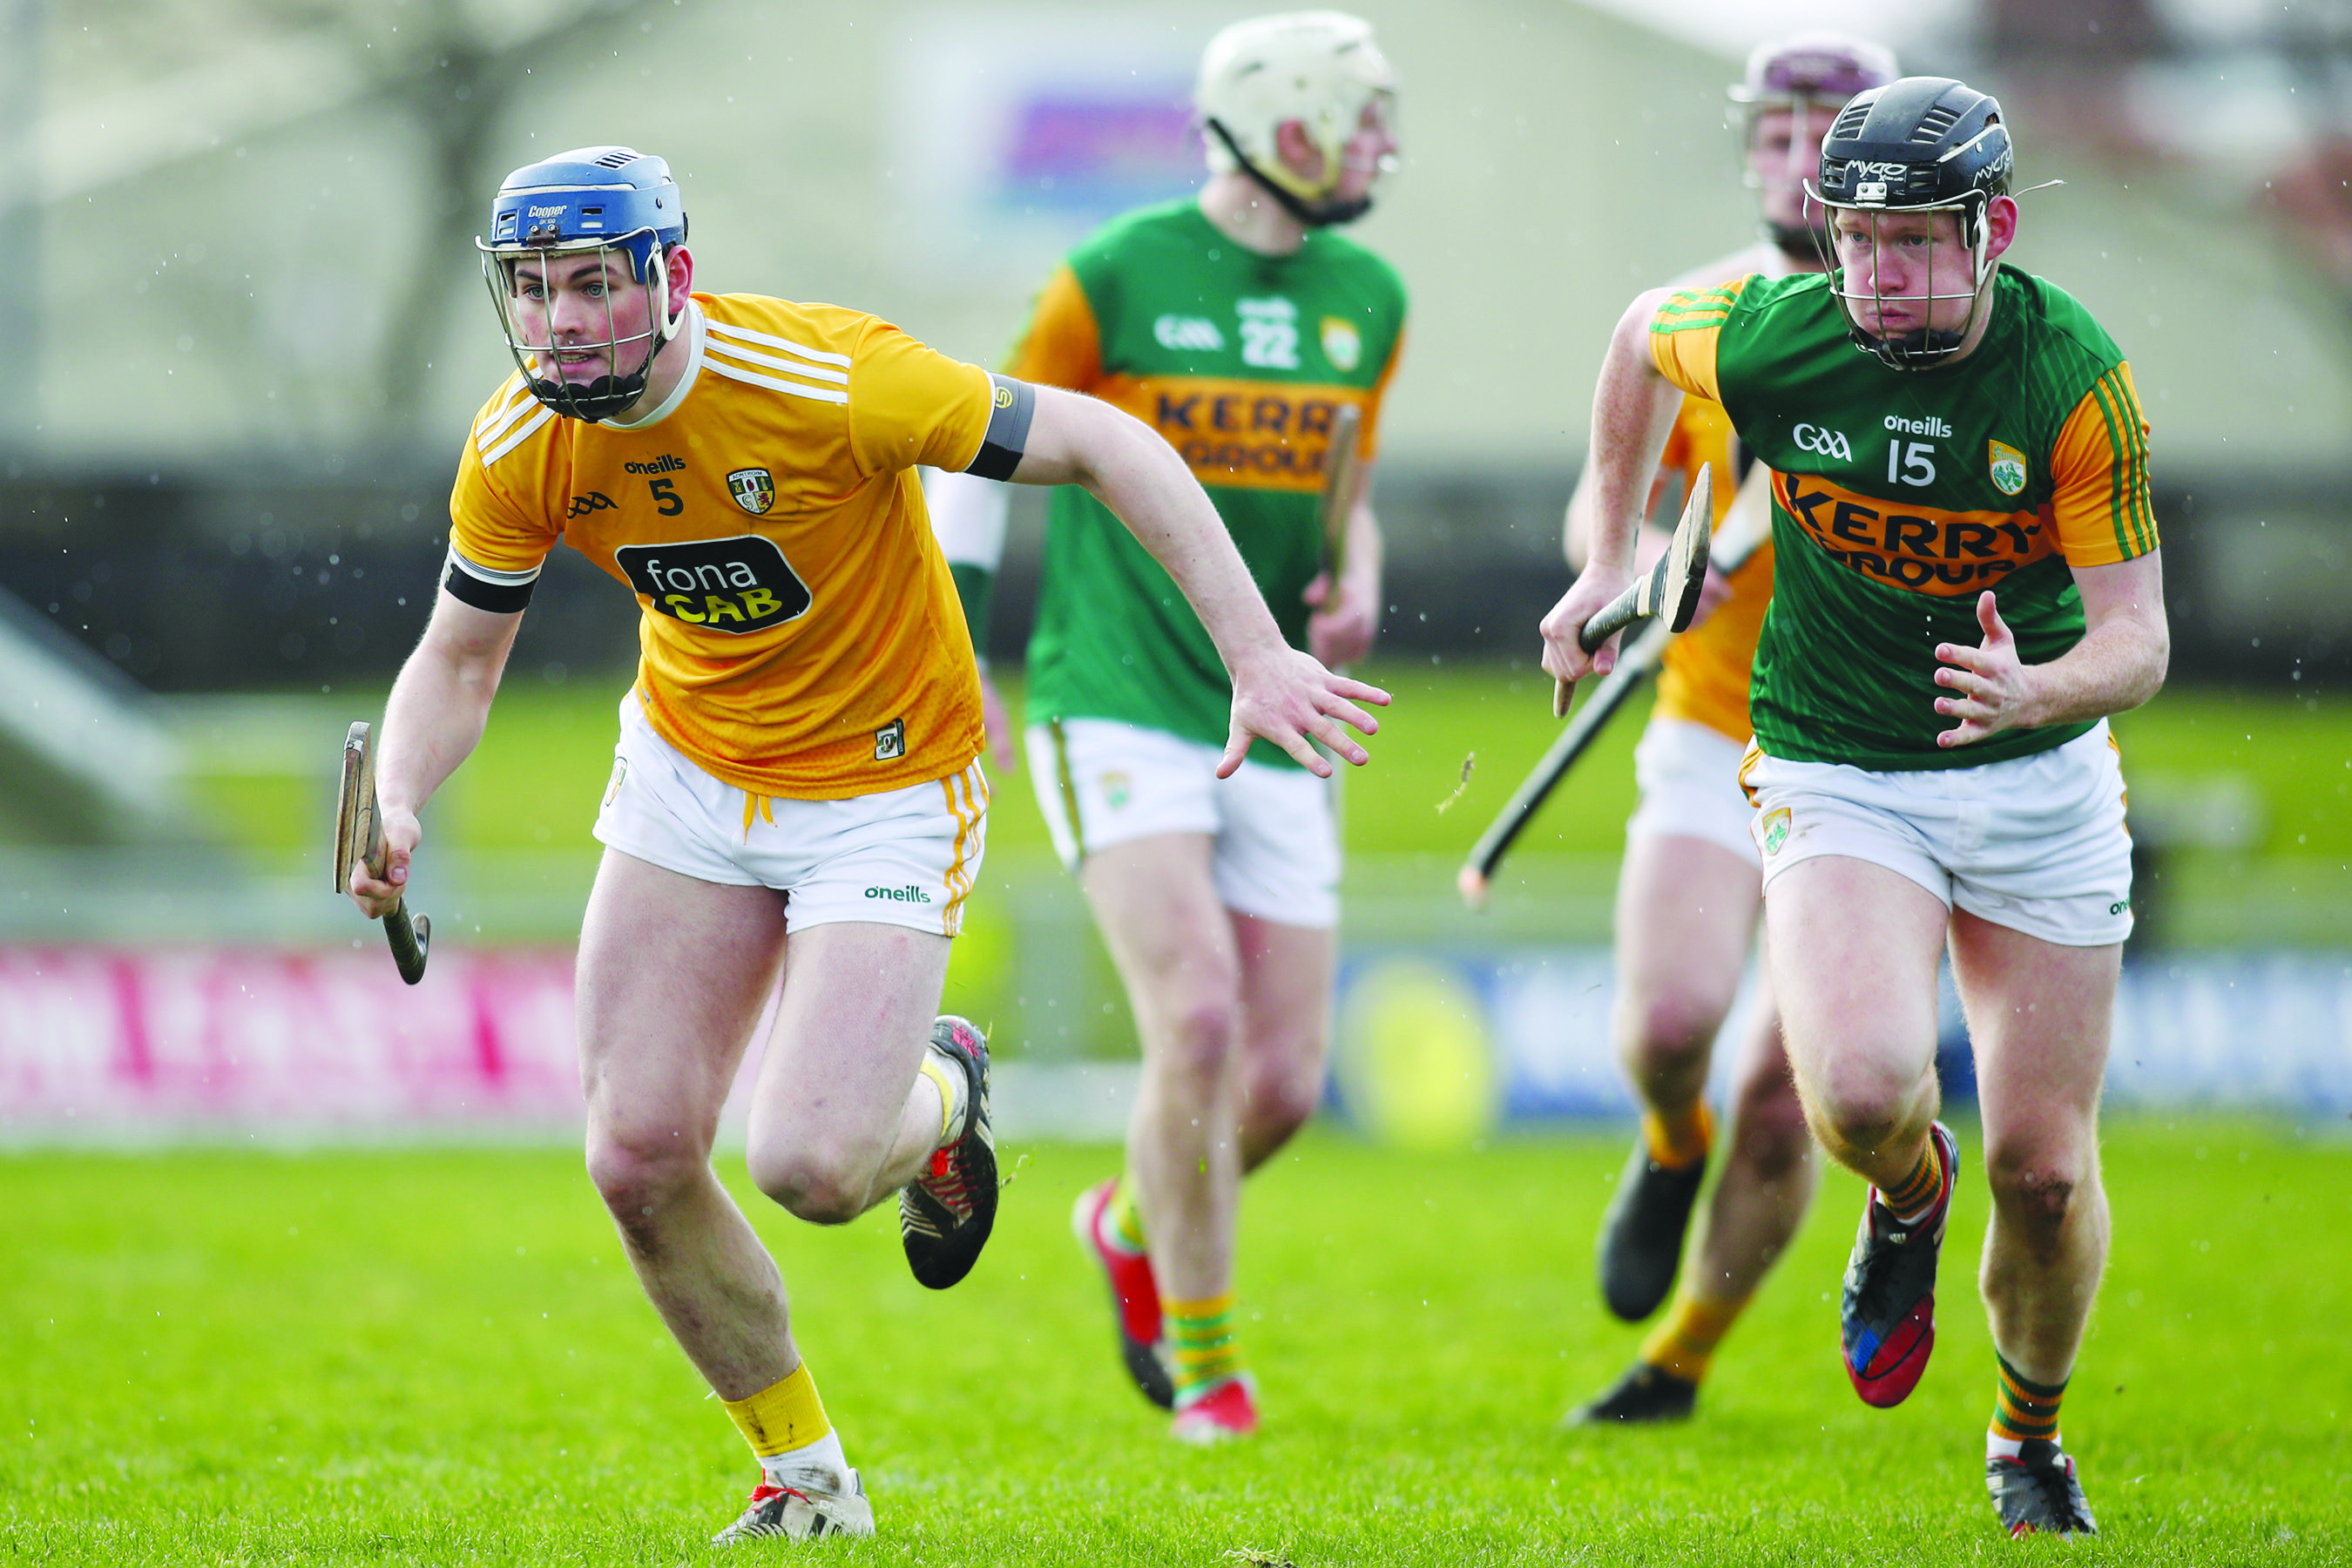 Antrim and Kerry will meet again on Sunday, October 18 to decide who gets promoted to Division One for the 2021 National League